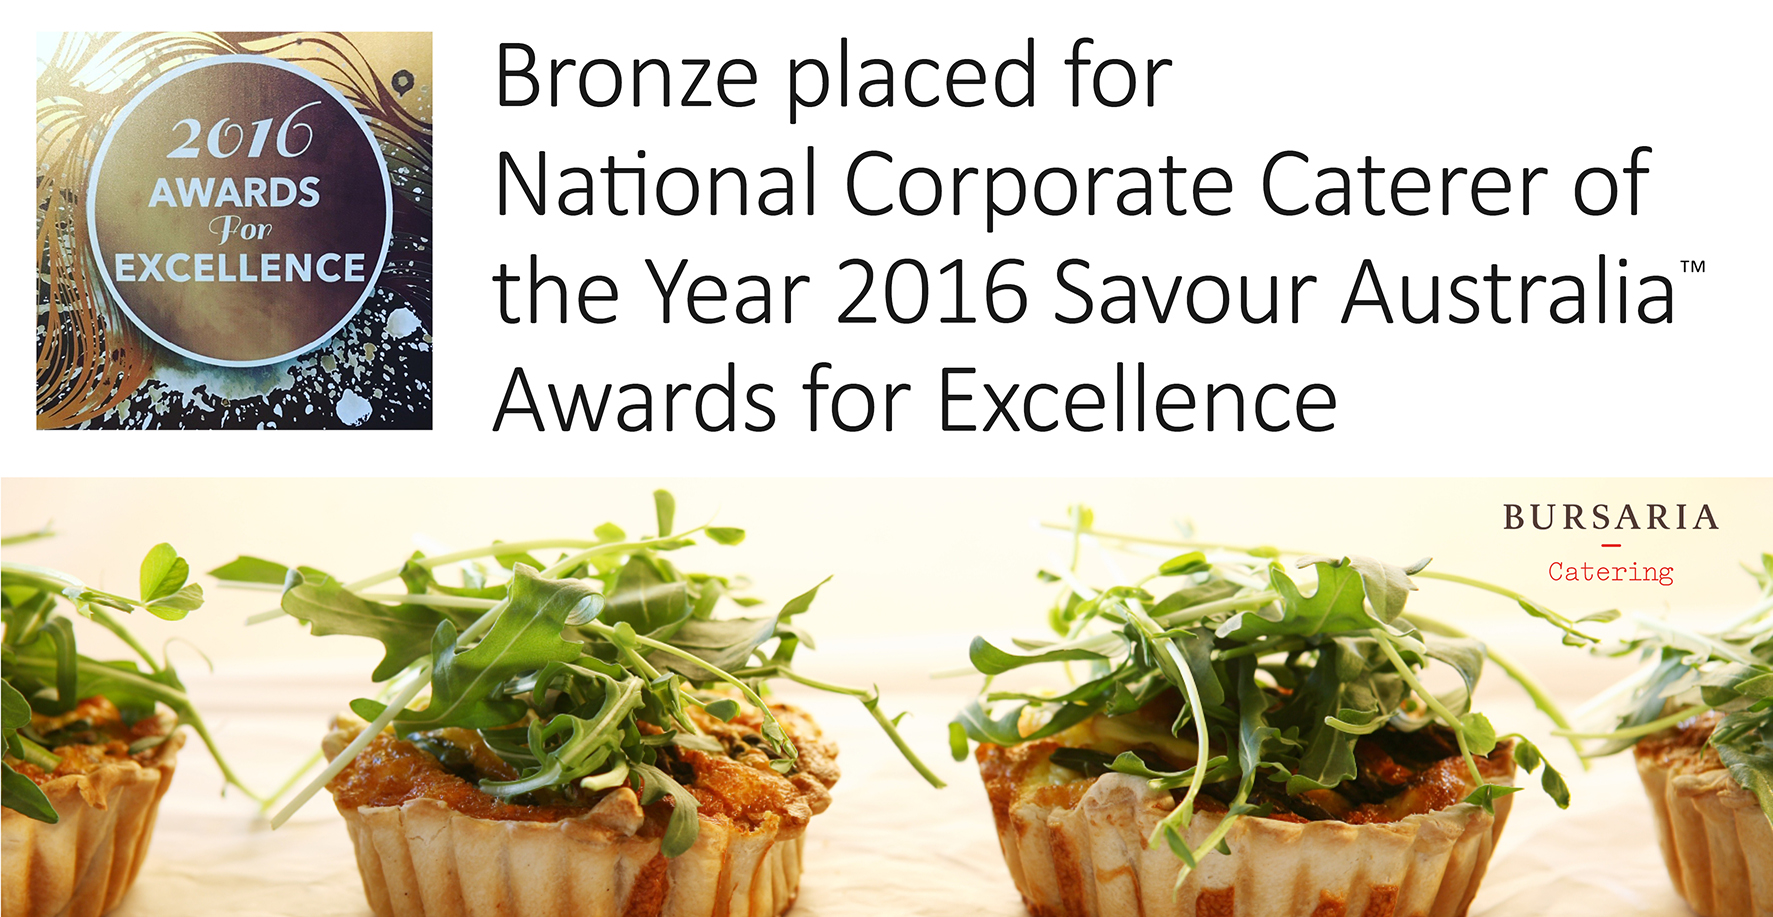 bursaria_website_2016_national_savour_awards_corporate_caterer_of_the_year_website_tile